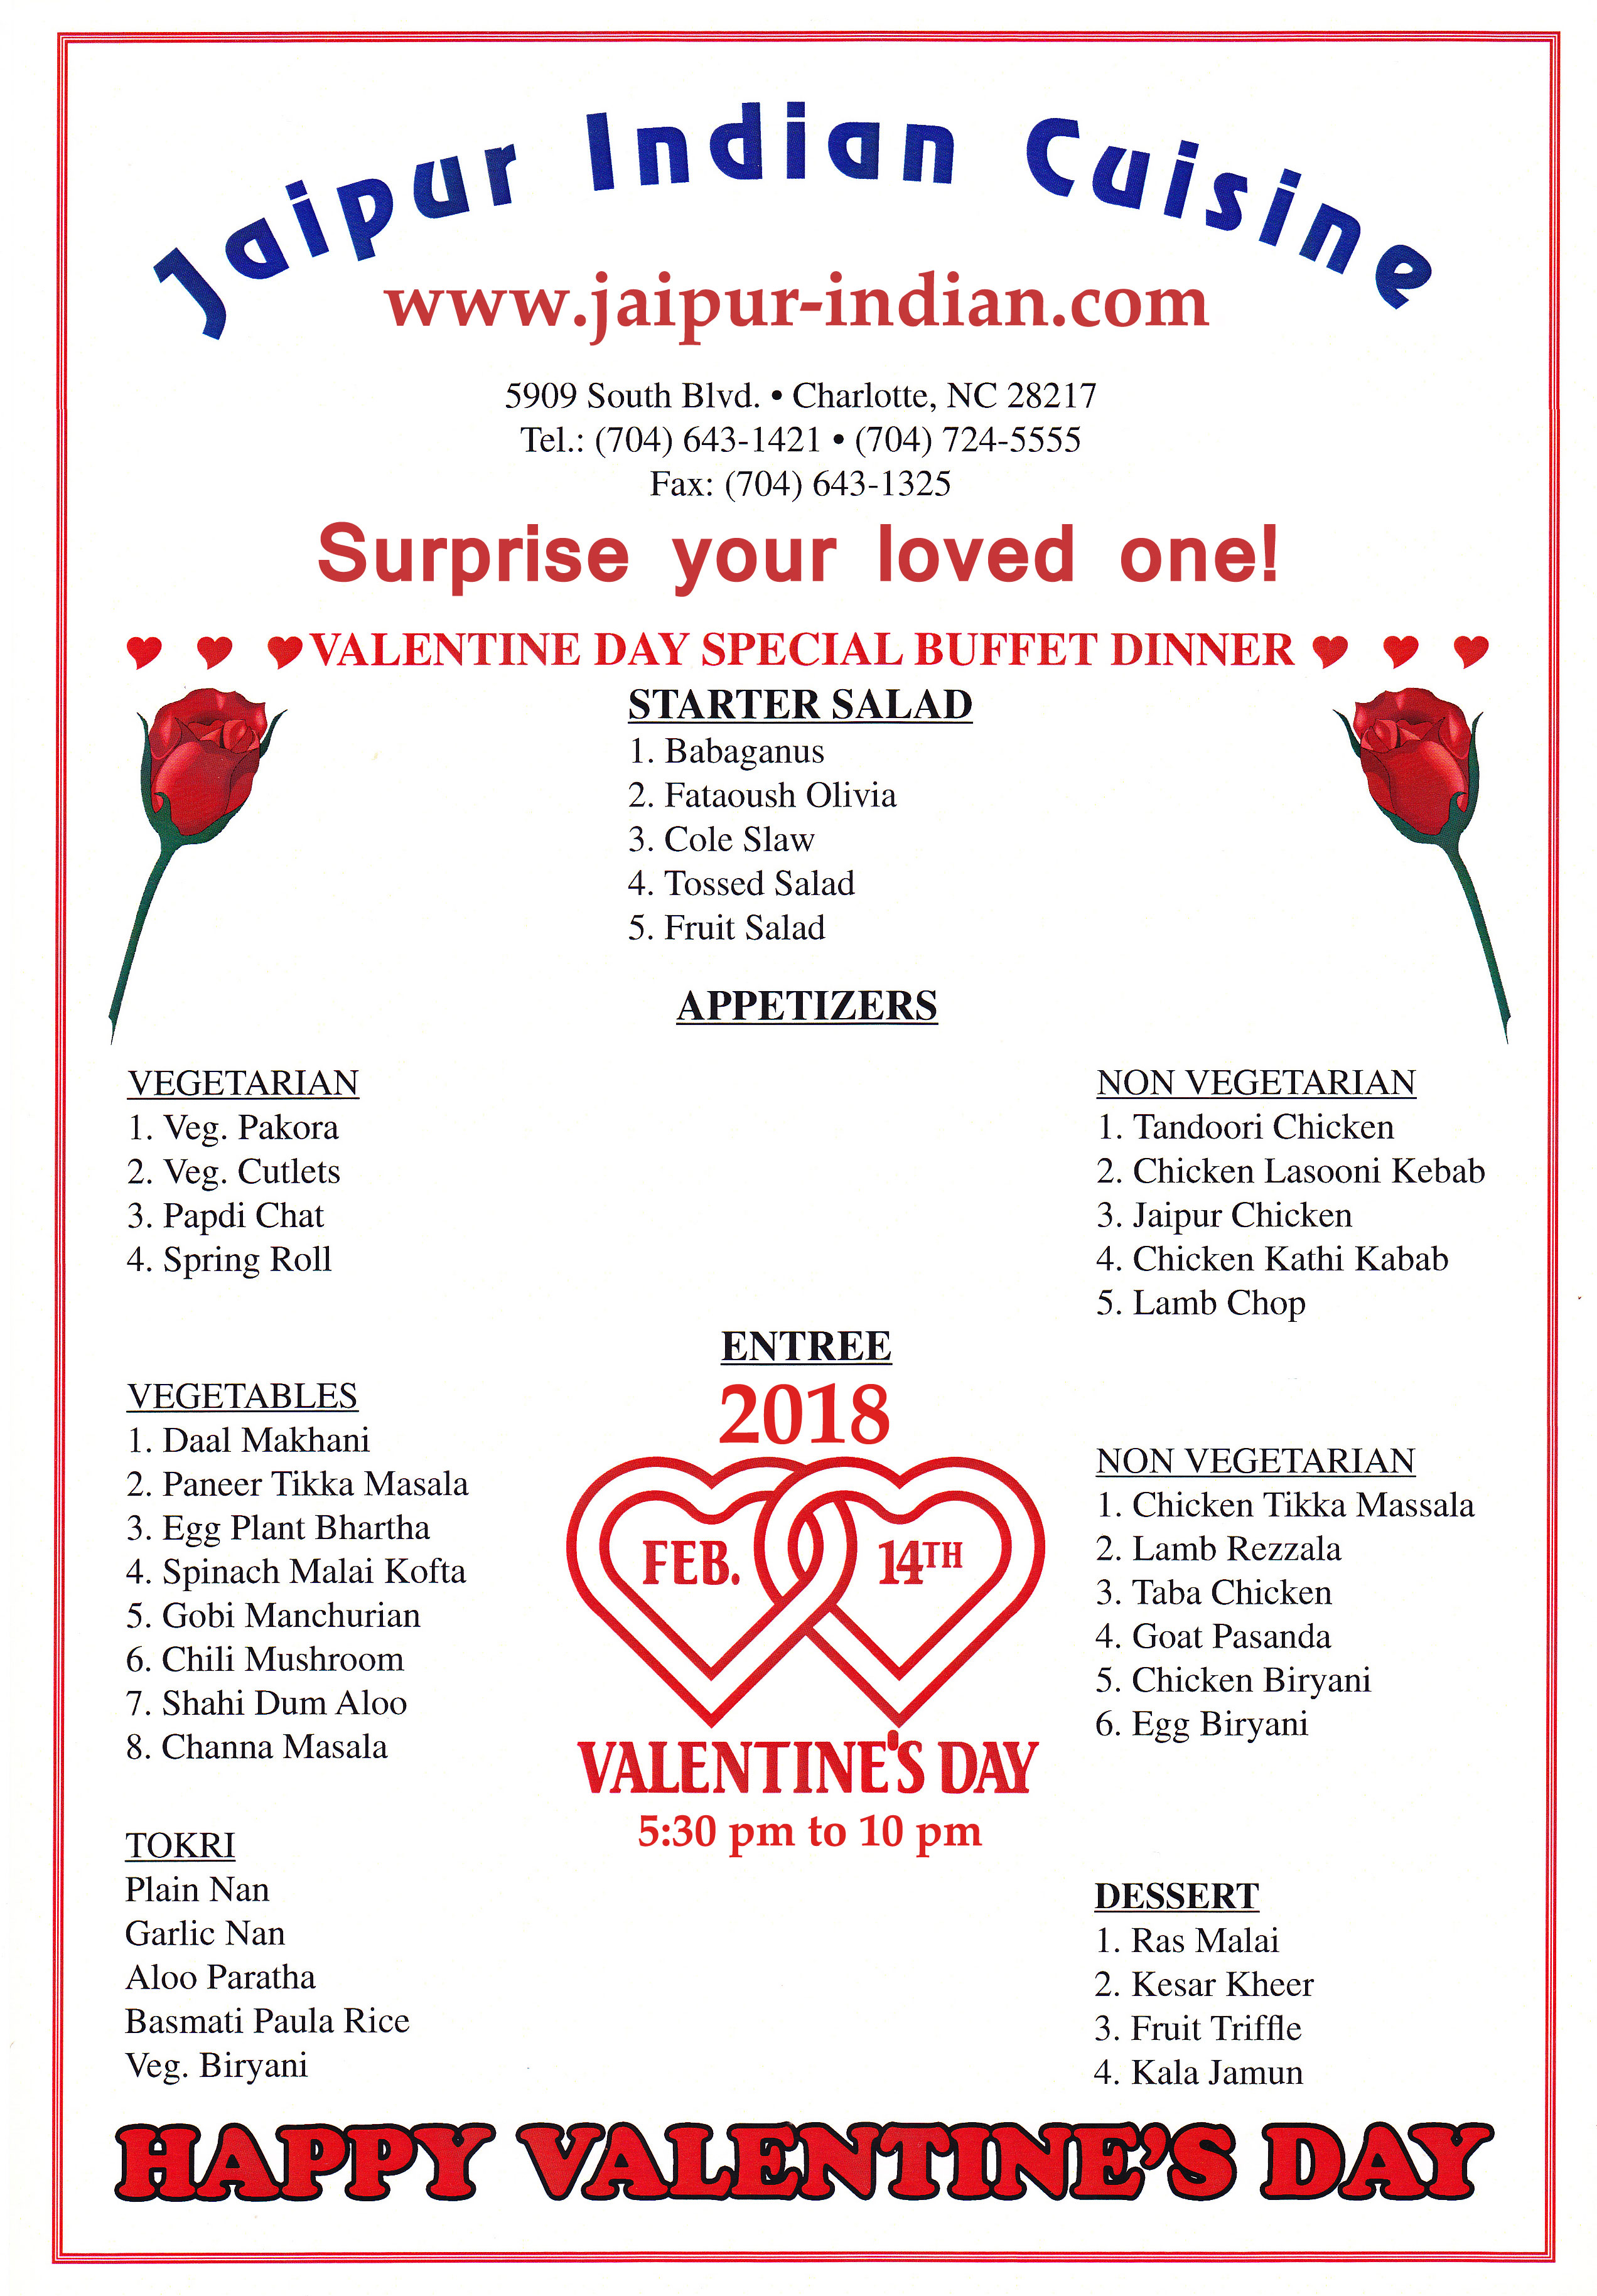 valentine day Feb 14 2018 special dinner buffet at jaipur indian restaurant charlotte